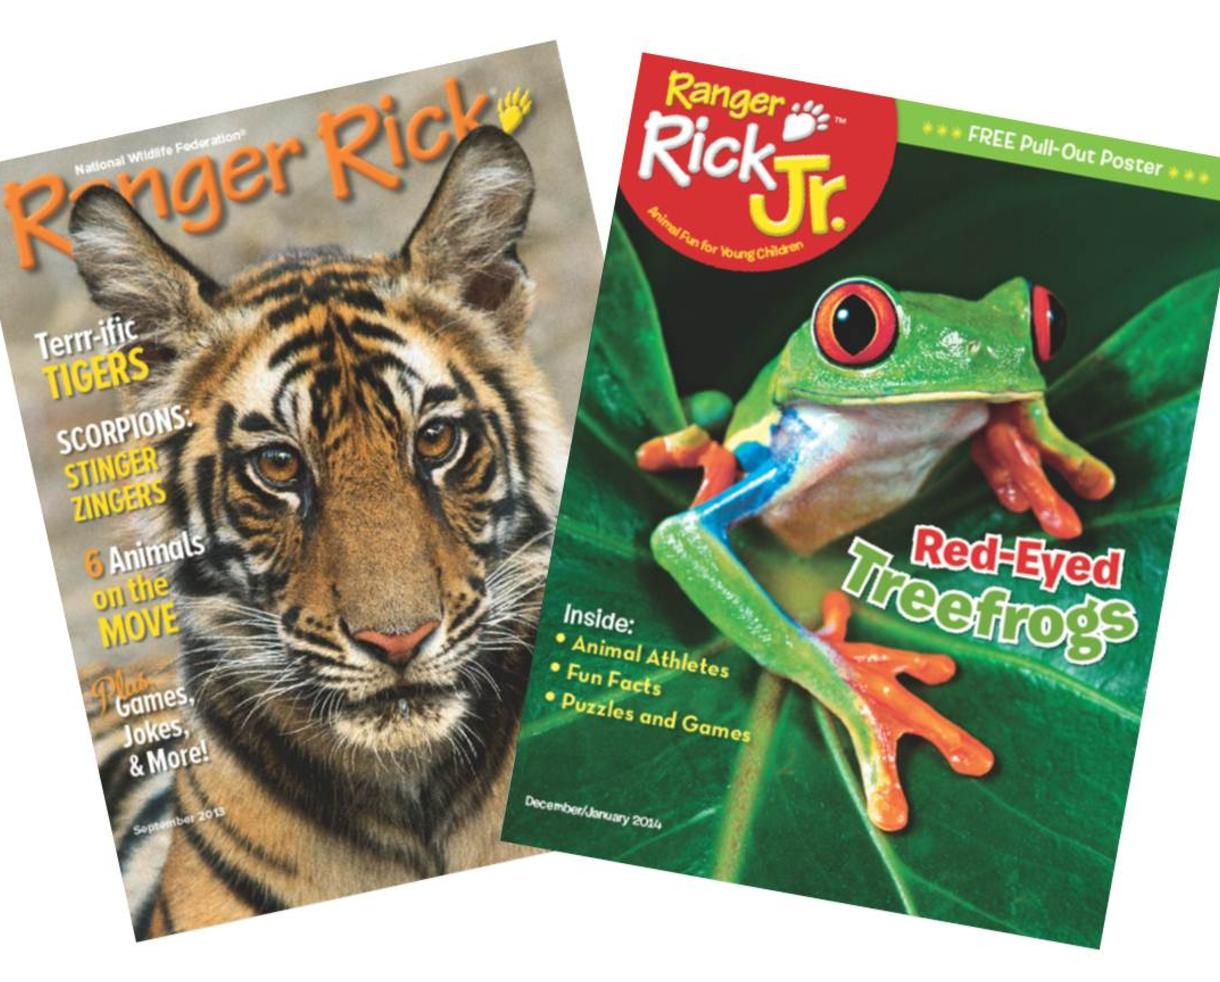 Since Ranger Rick Jr. Magazine has been children's gateway into the natural world. Created by the National Wildlife Federation for the youngest future explorers aged 3 to 7 years, it is full of discoveries, fun activities and cute animals that will draw preschoolers closer to nature and spark curiosity for the wild world around them.